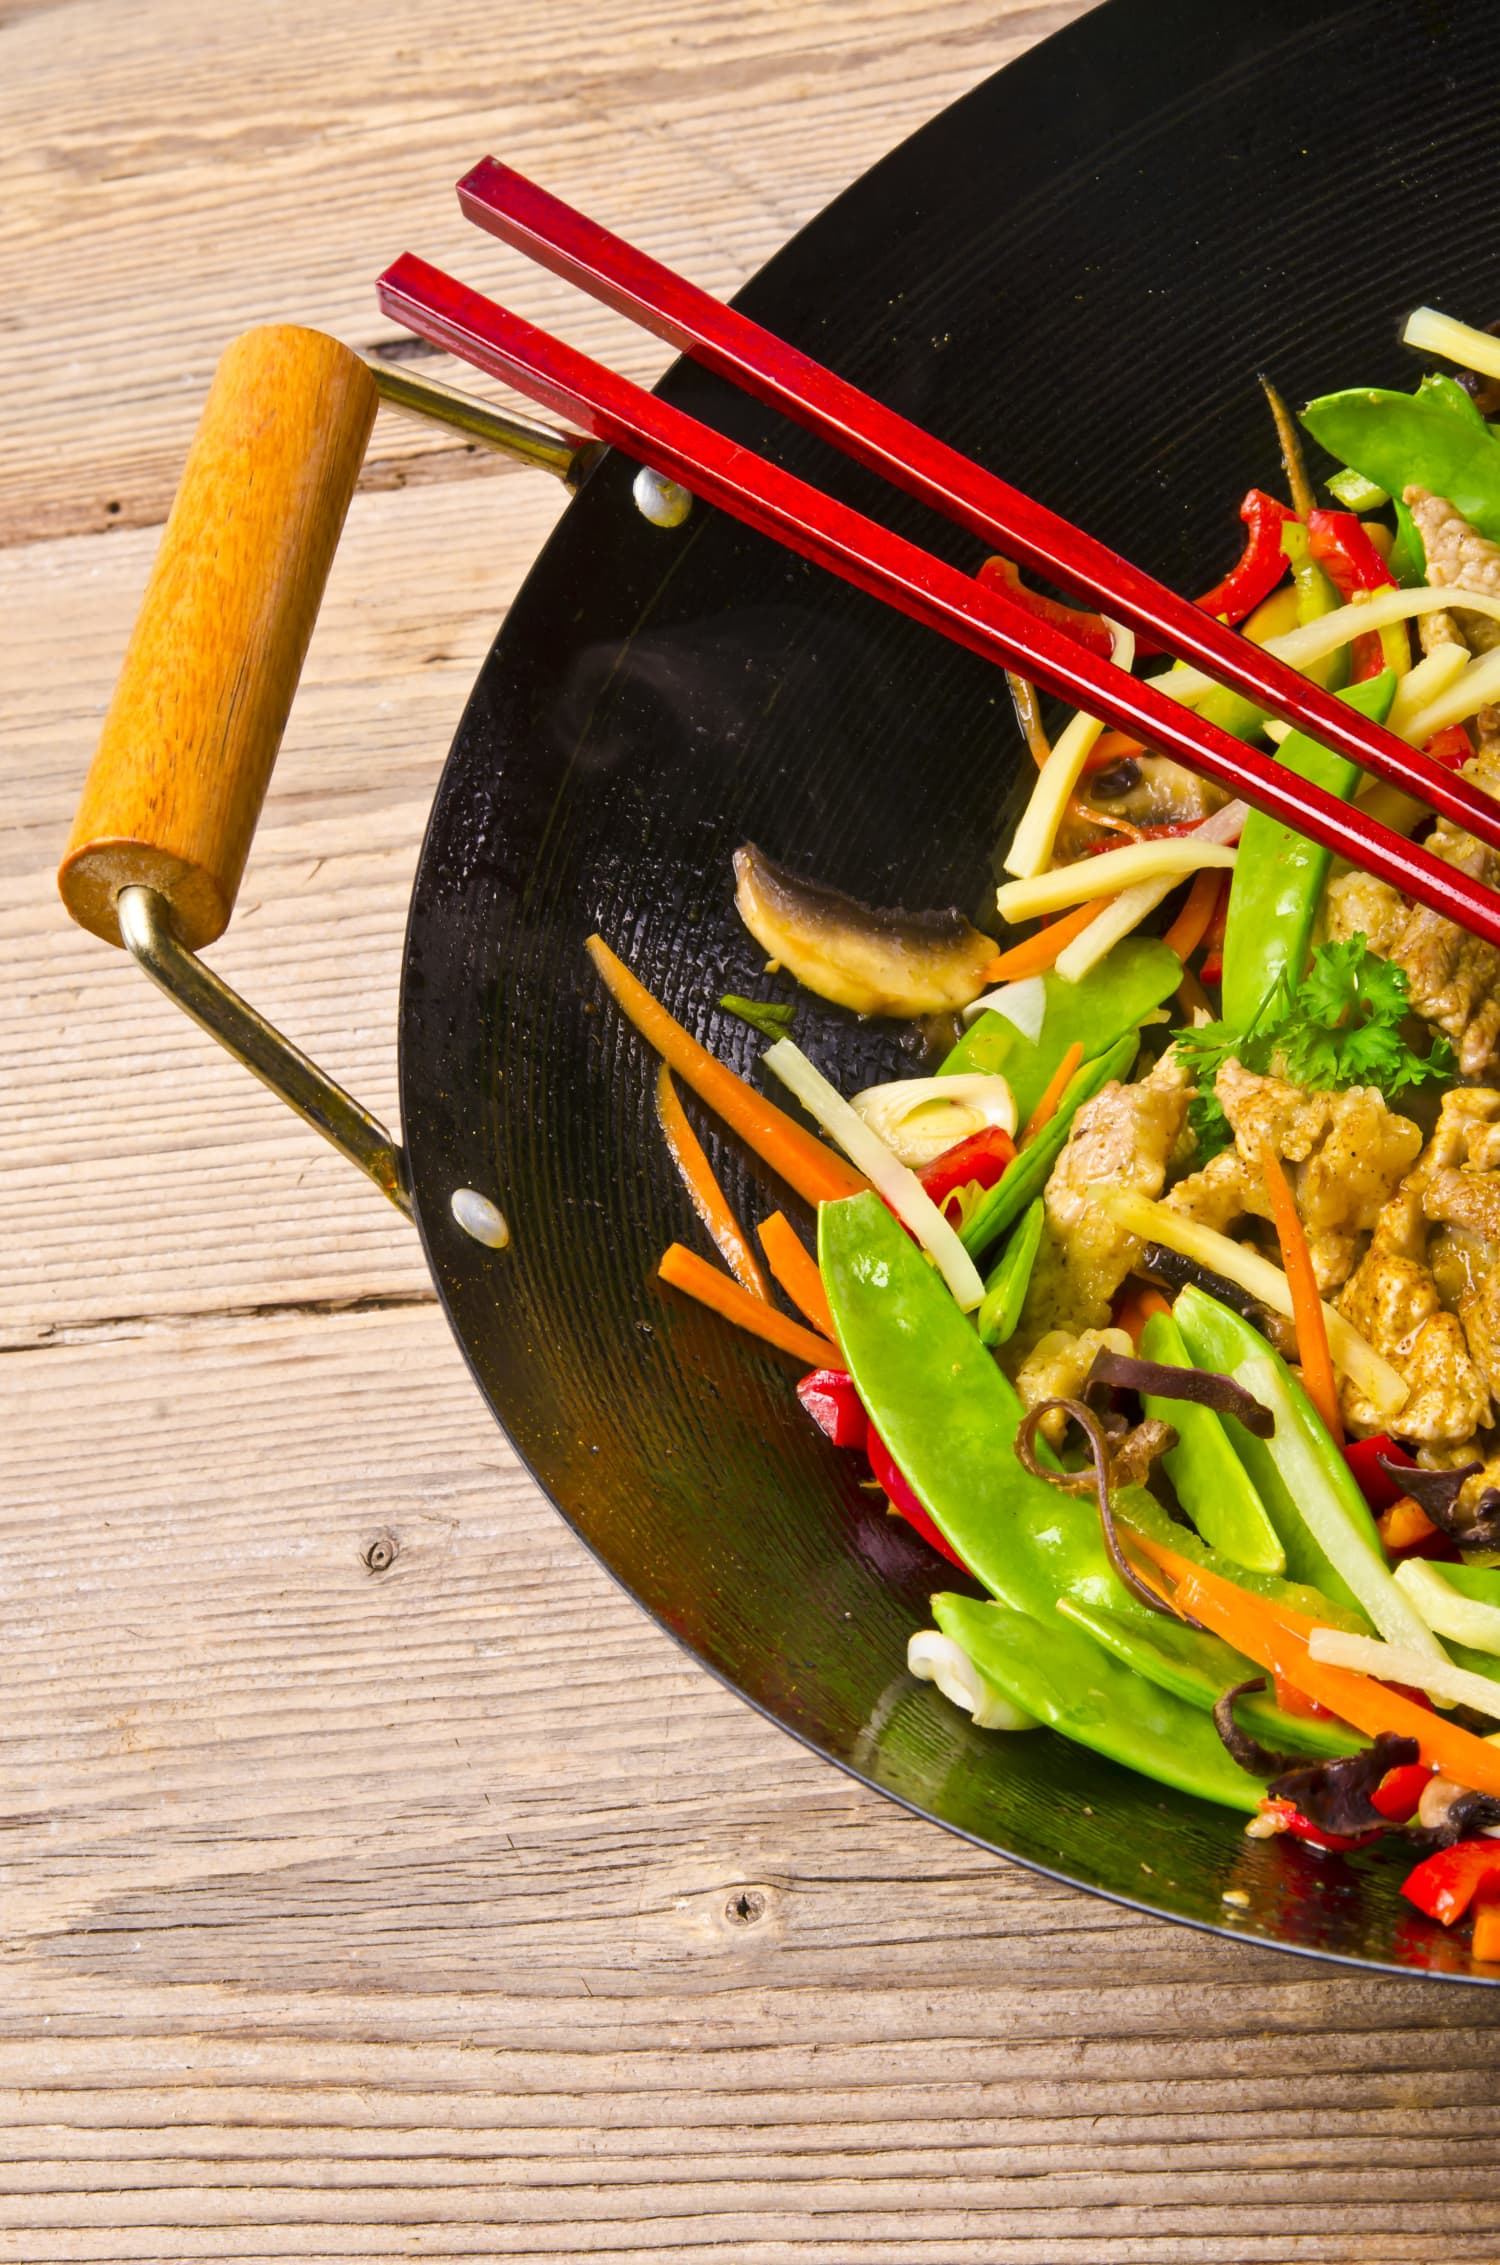 How To Buy and Season a New Wok